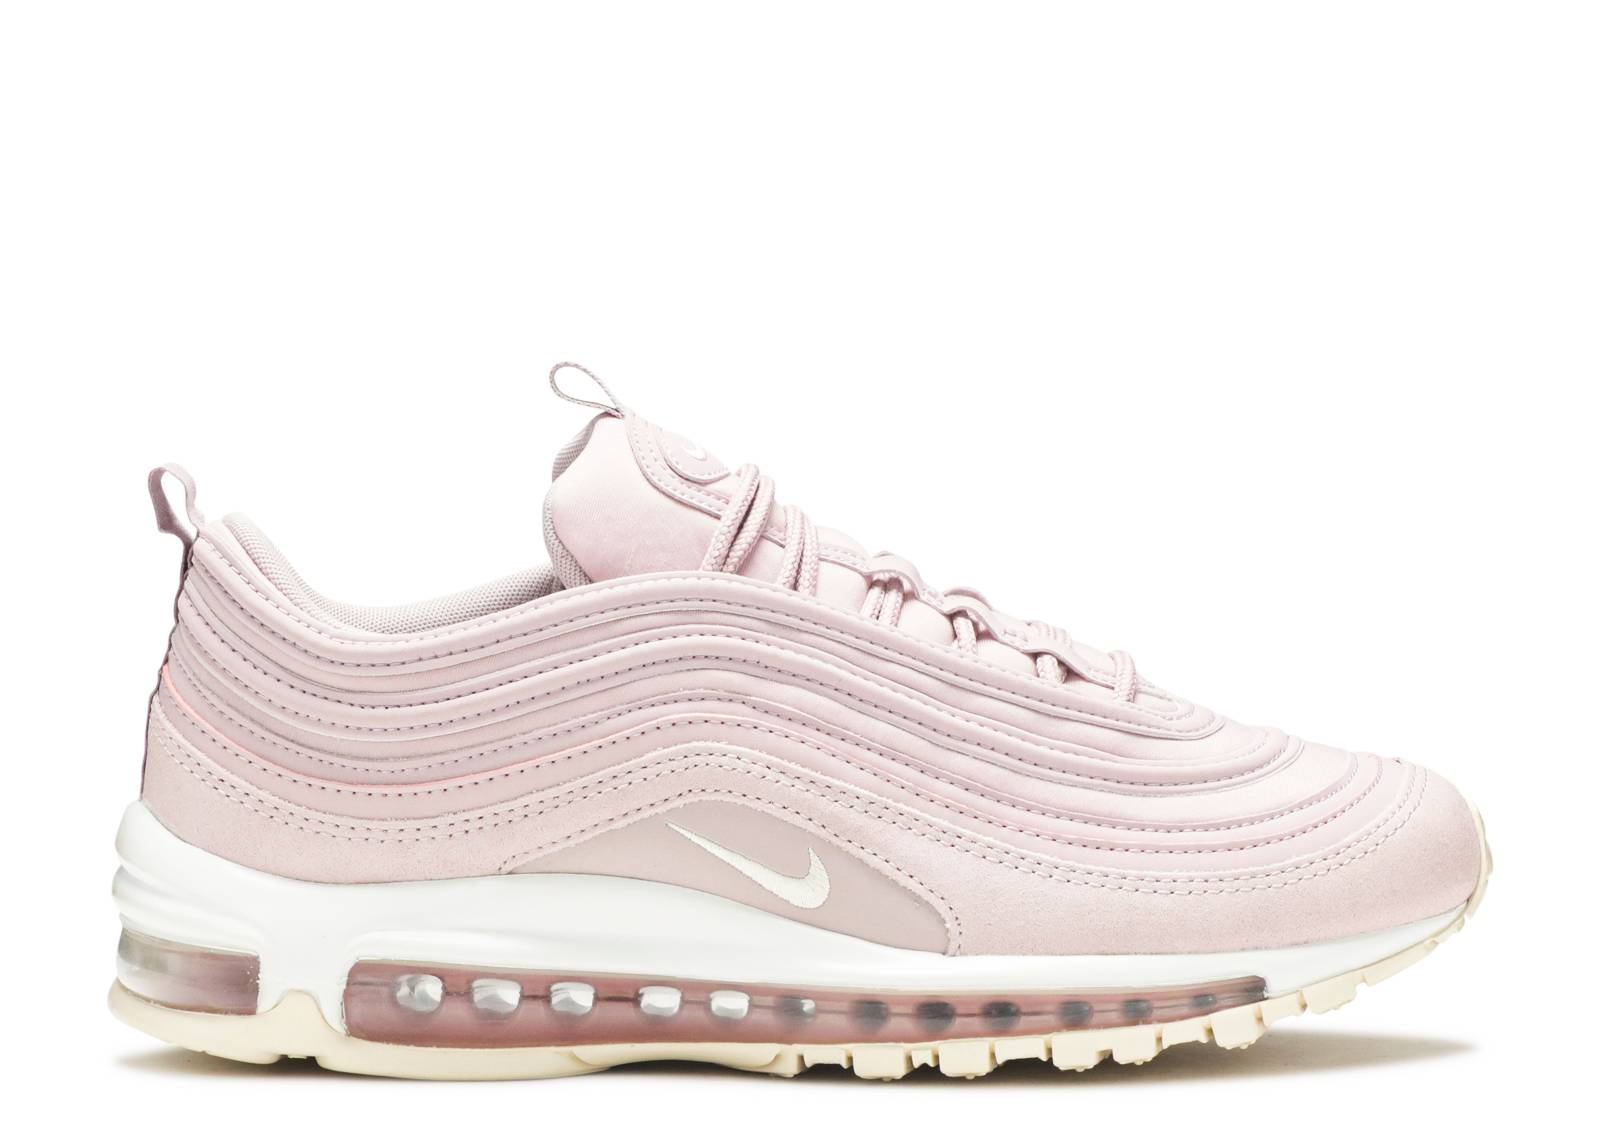 Undefeated Nike Air Max 97 Sail White Gorge Green Speed